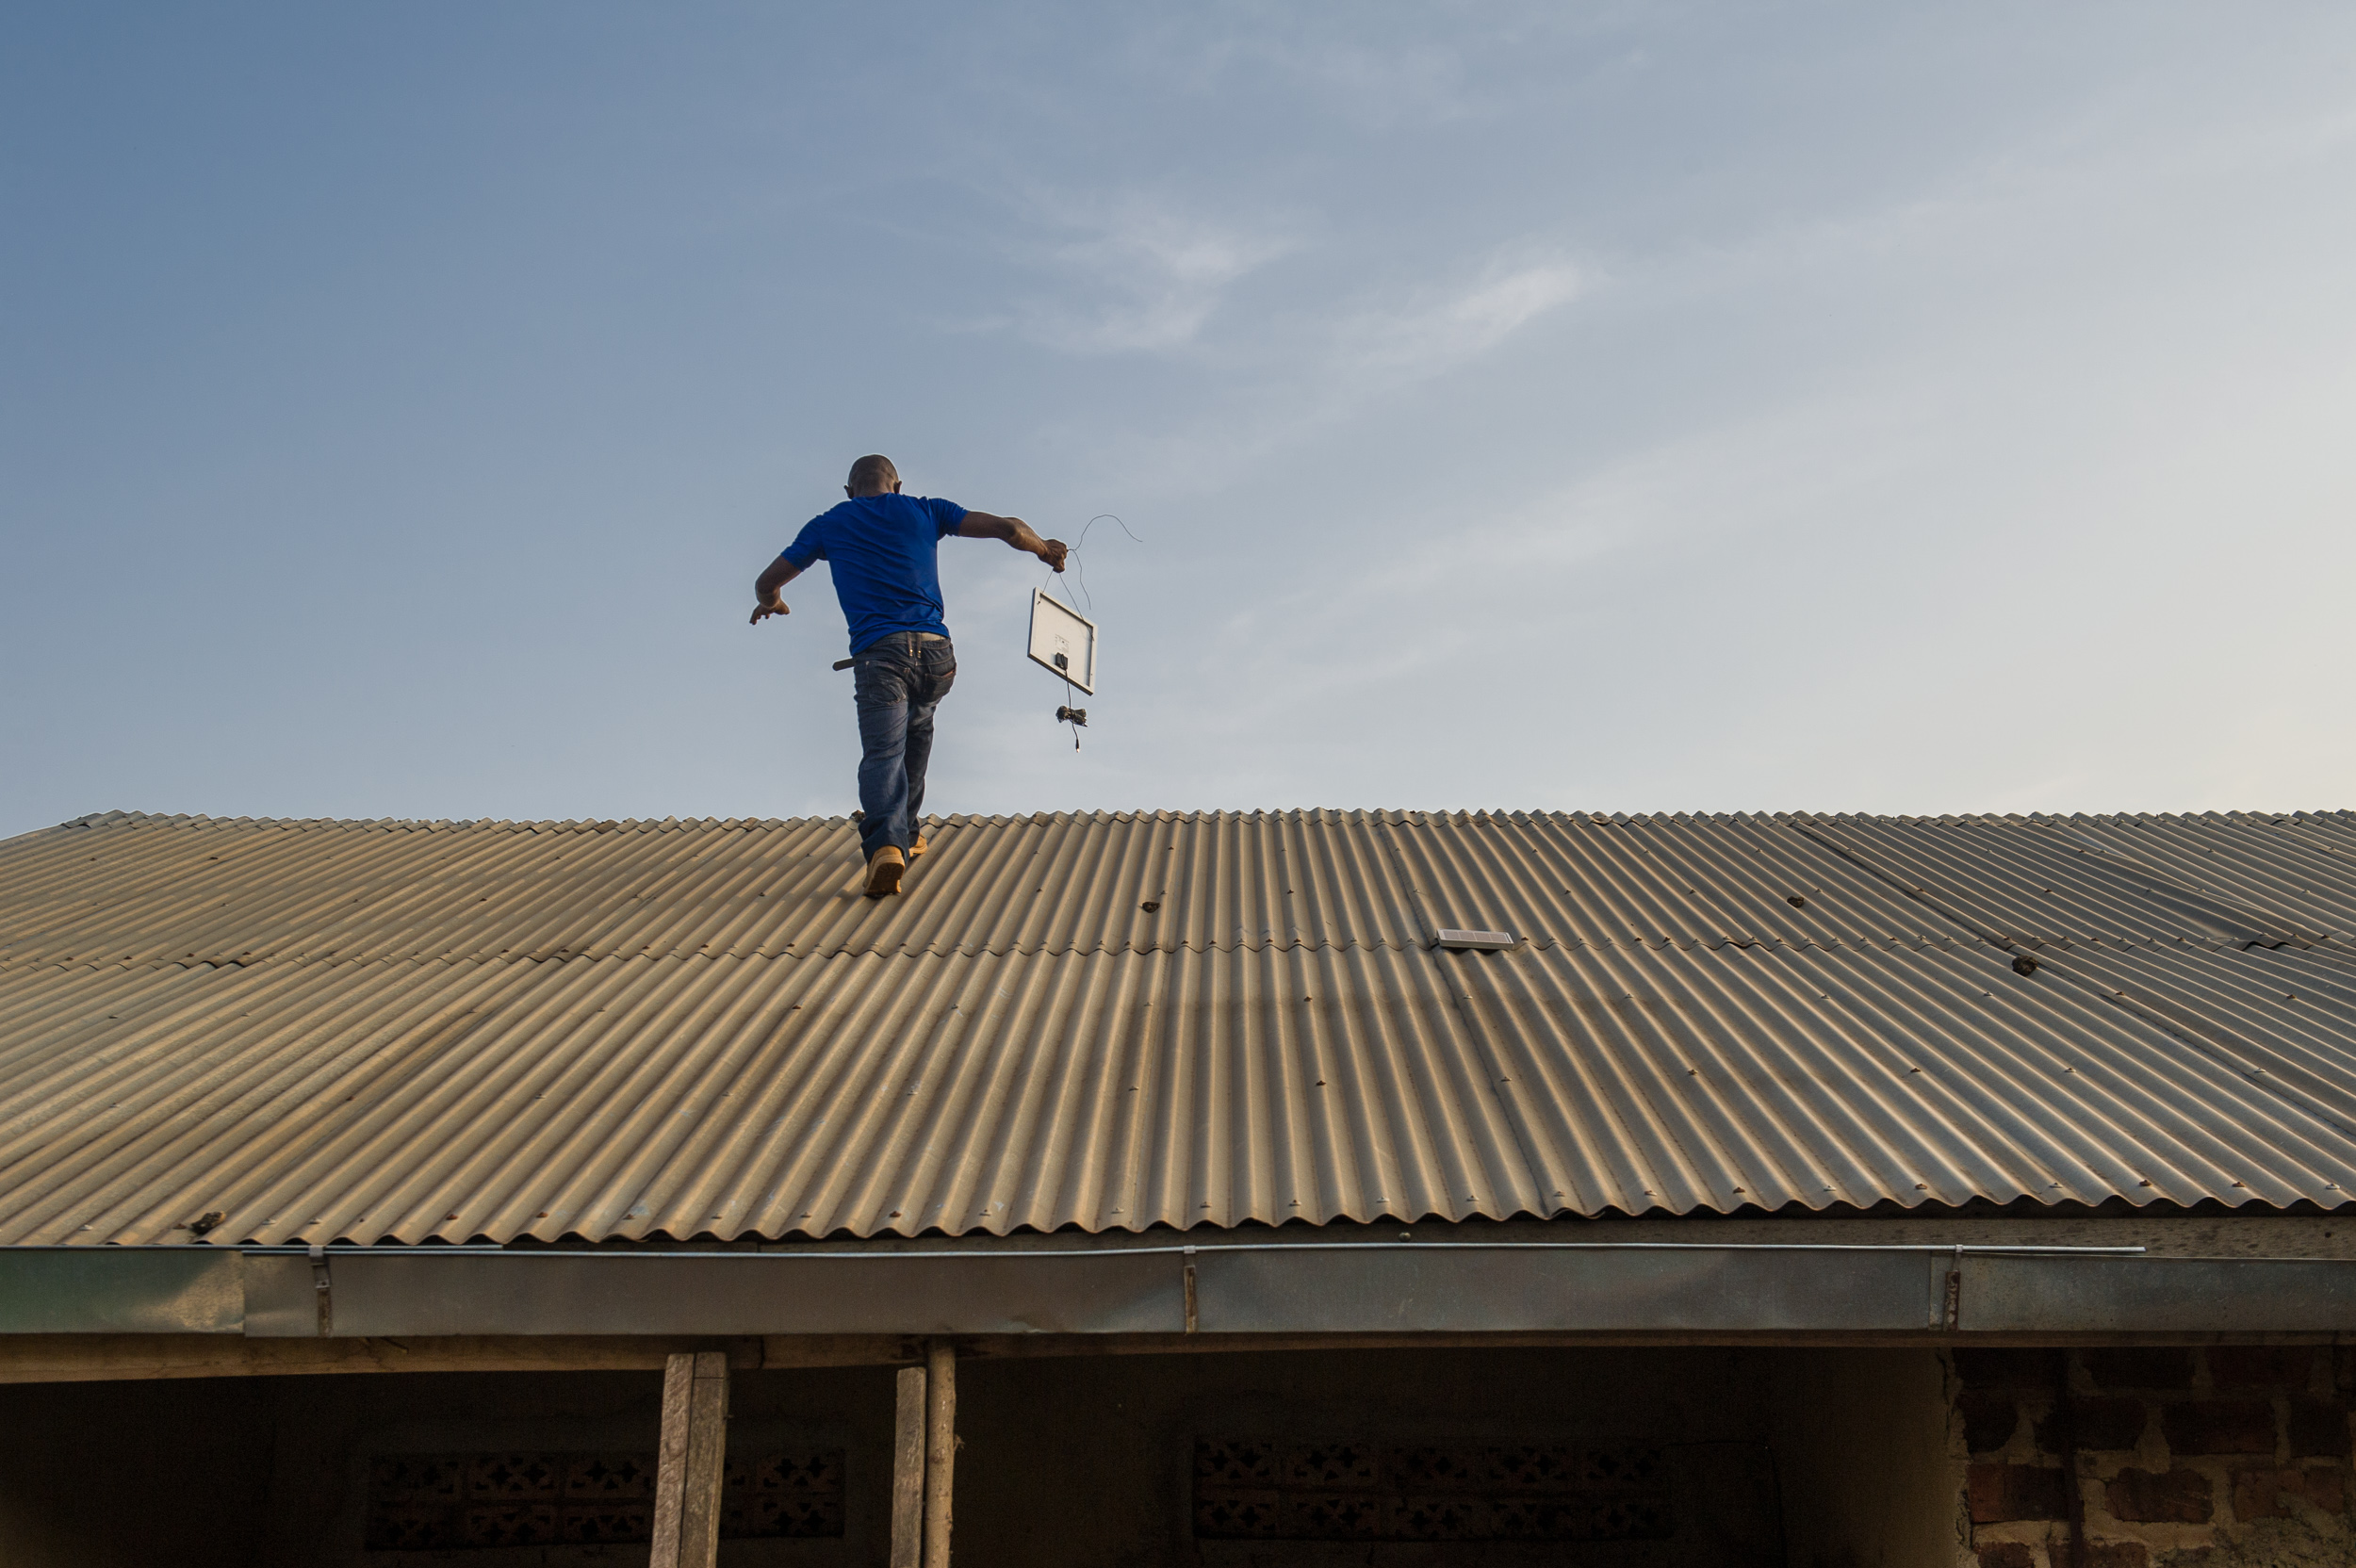 Abubaker, an electrician, installs a small solar panel on the roof.